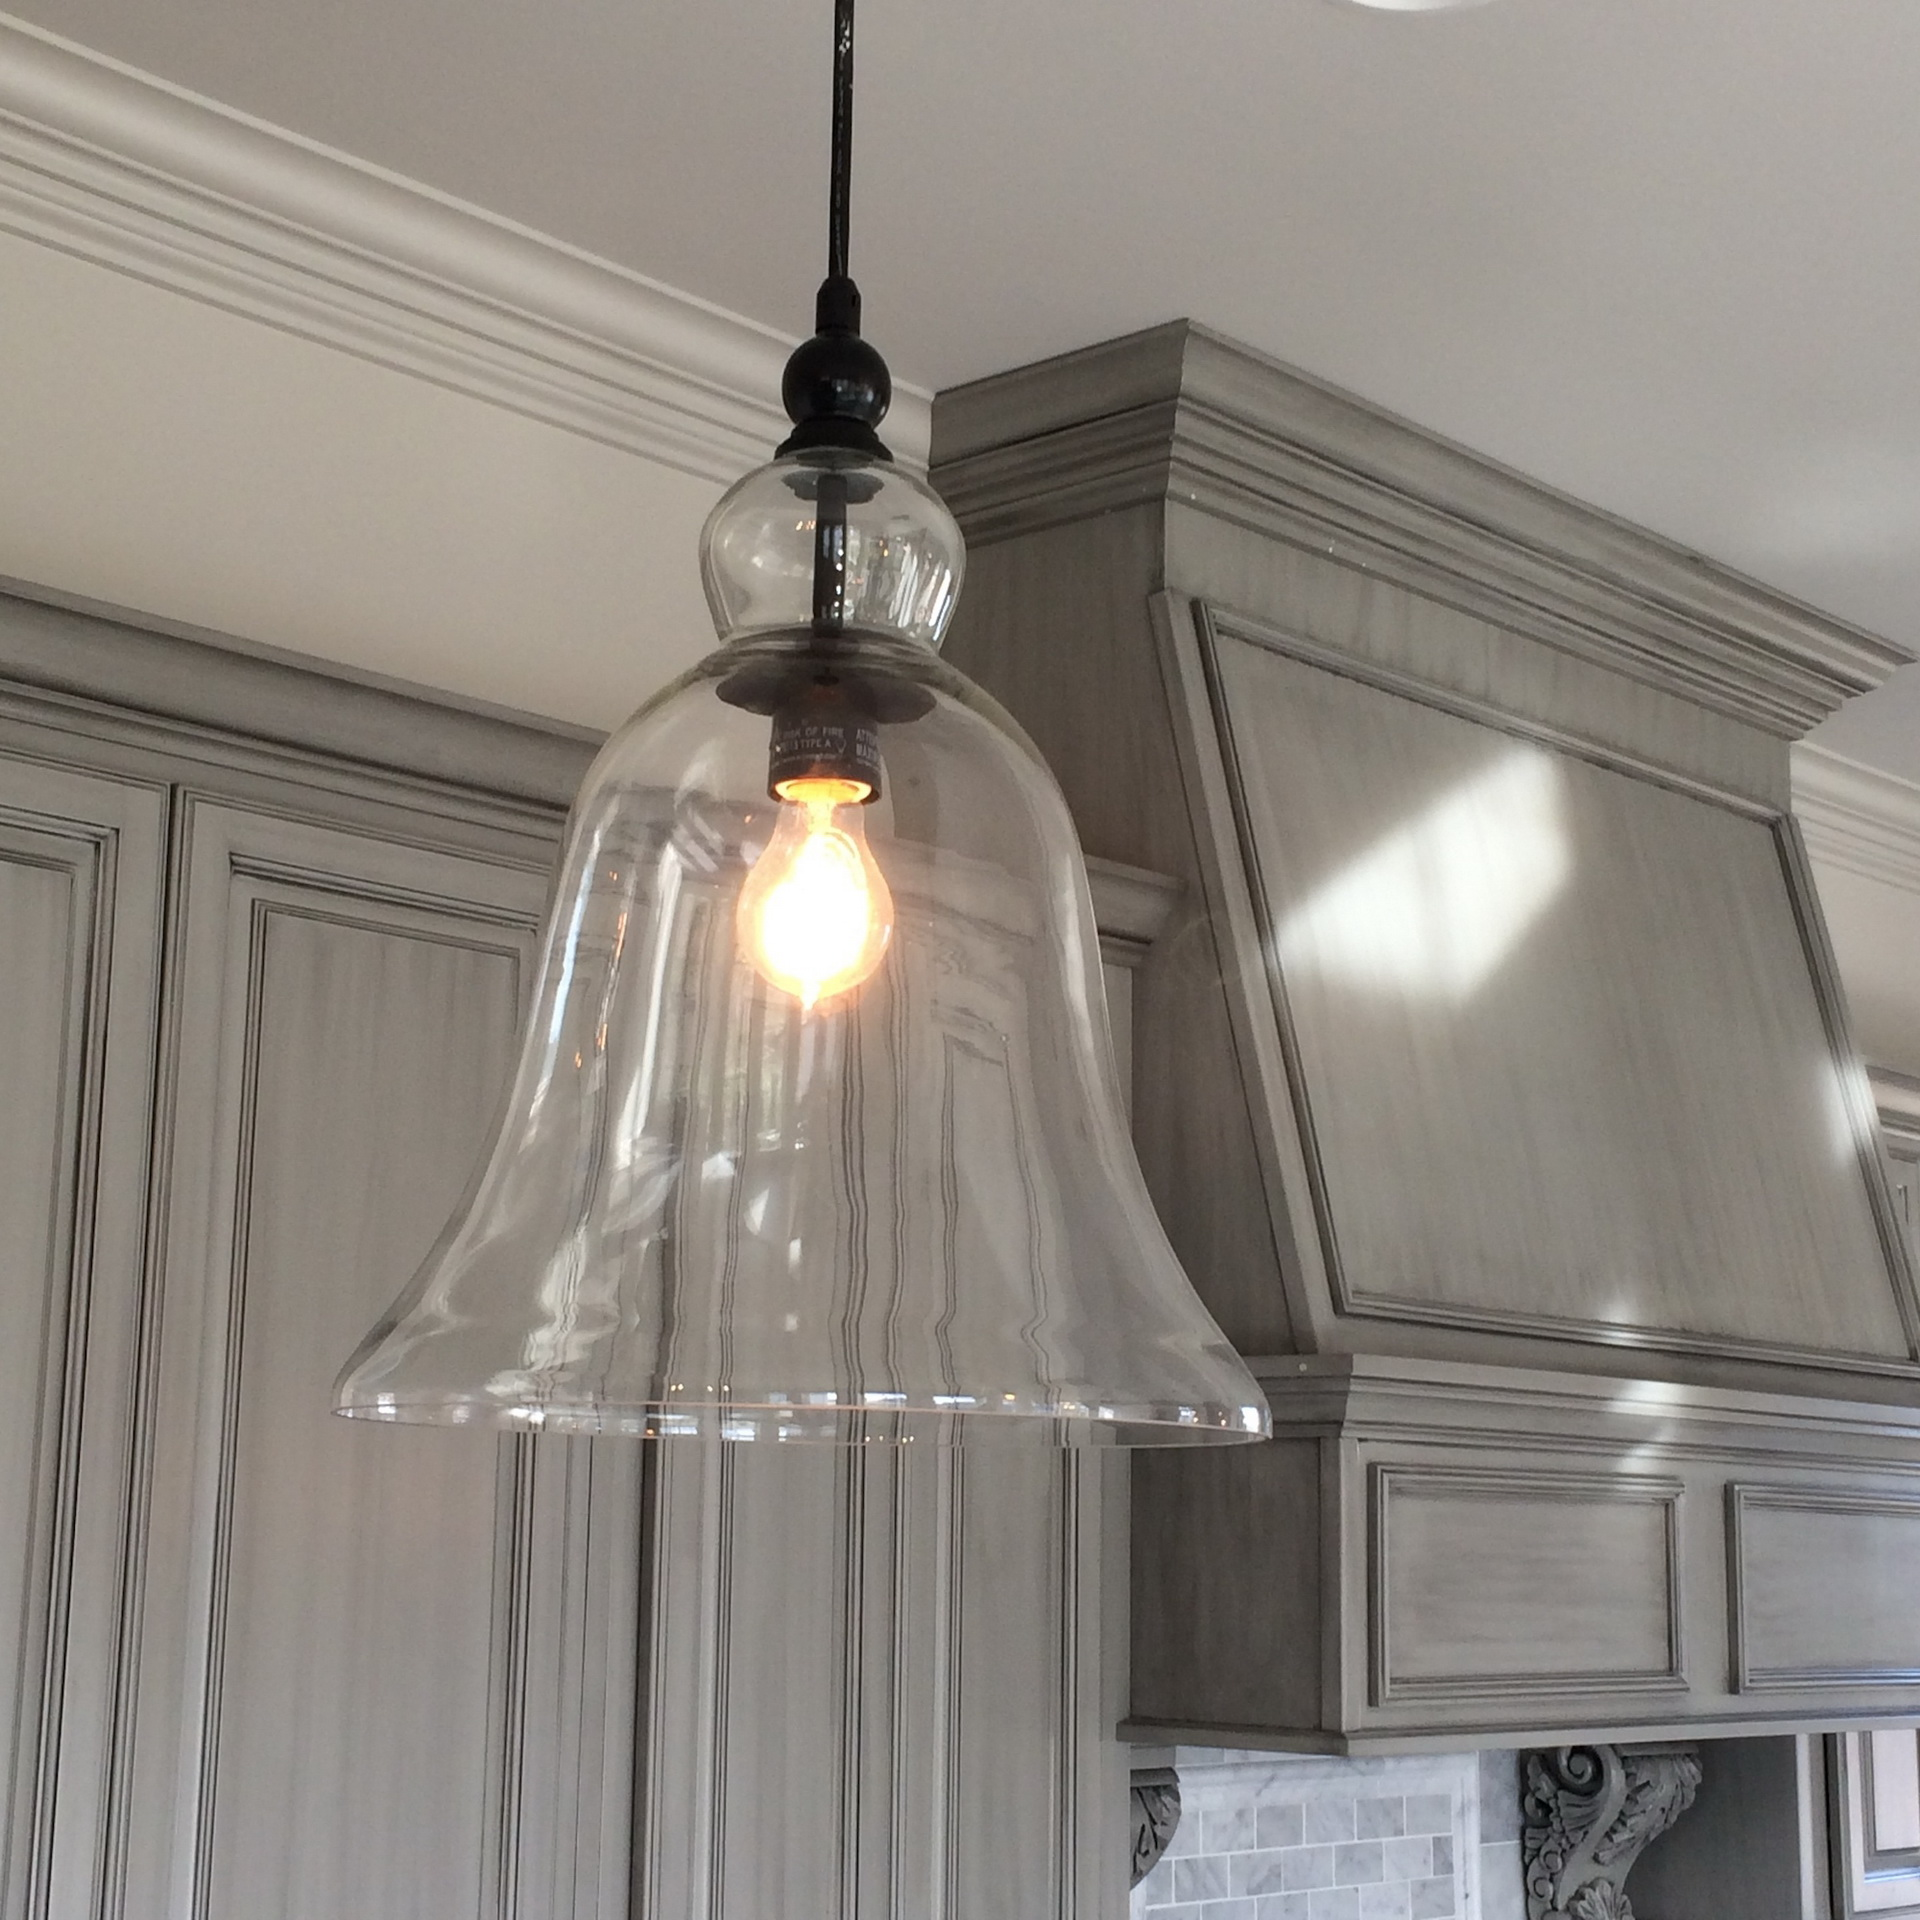 These Ceiling Lights Help To Focus The Light Downwards And Give More Than Sufficient  Light To Light Up The Room. Pictures Gallery